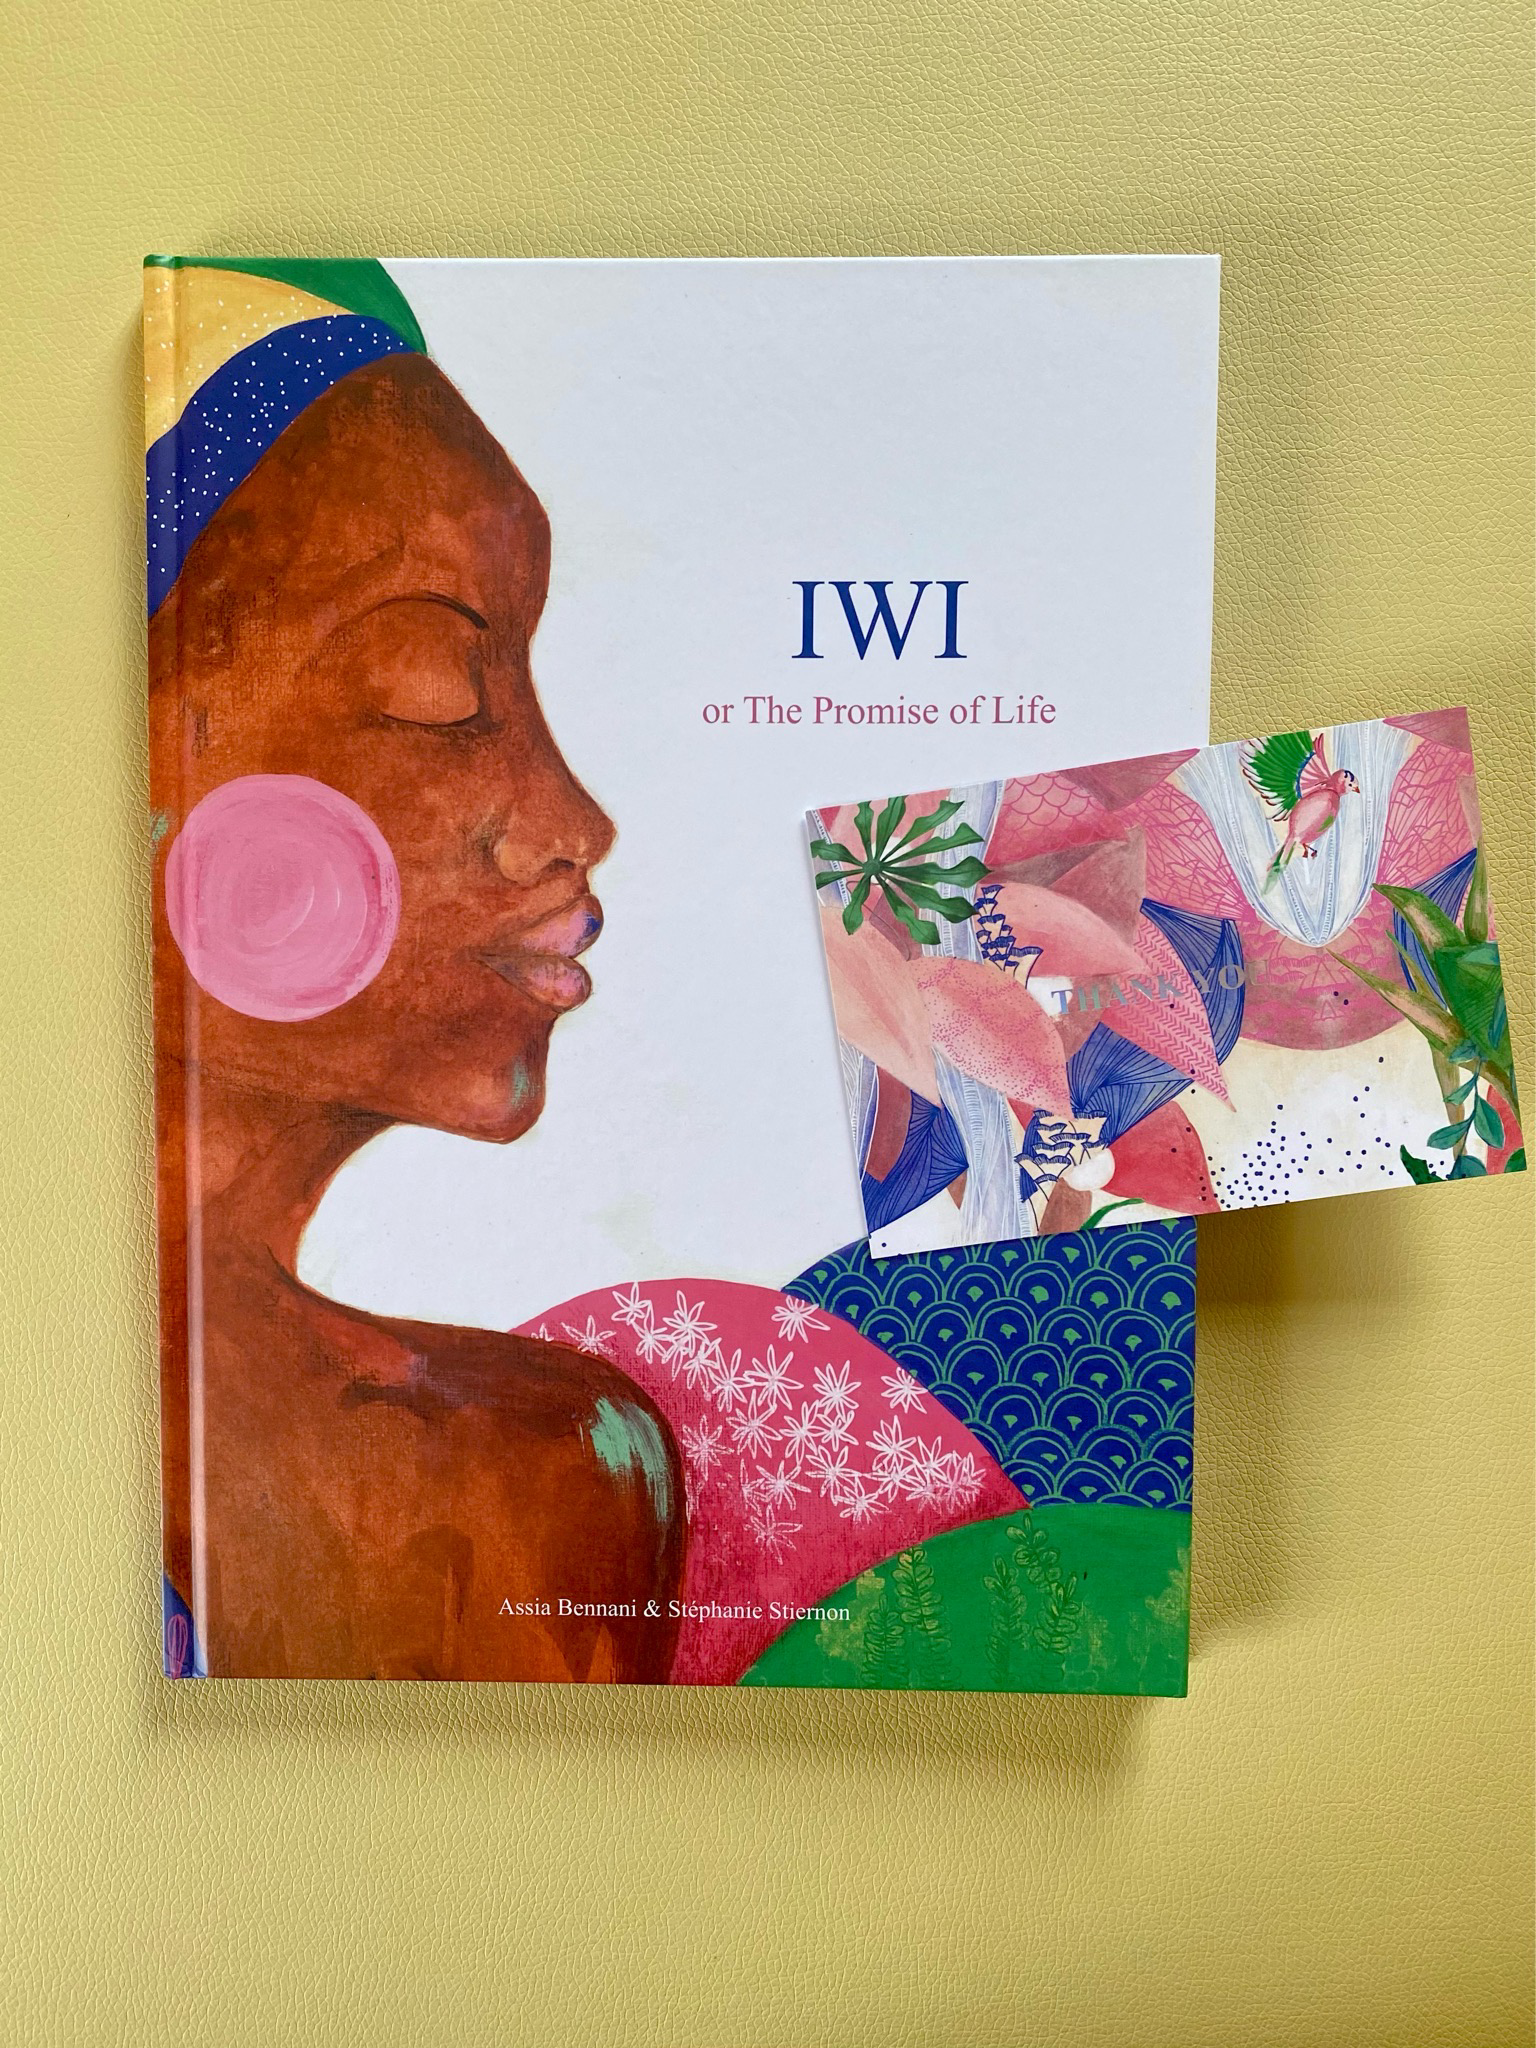 IWI or the promise of life